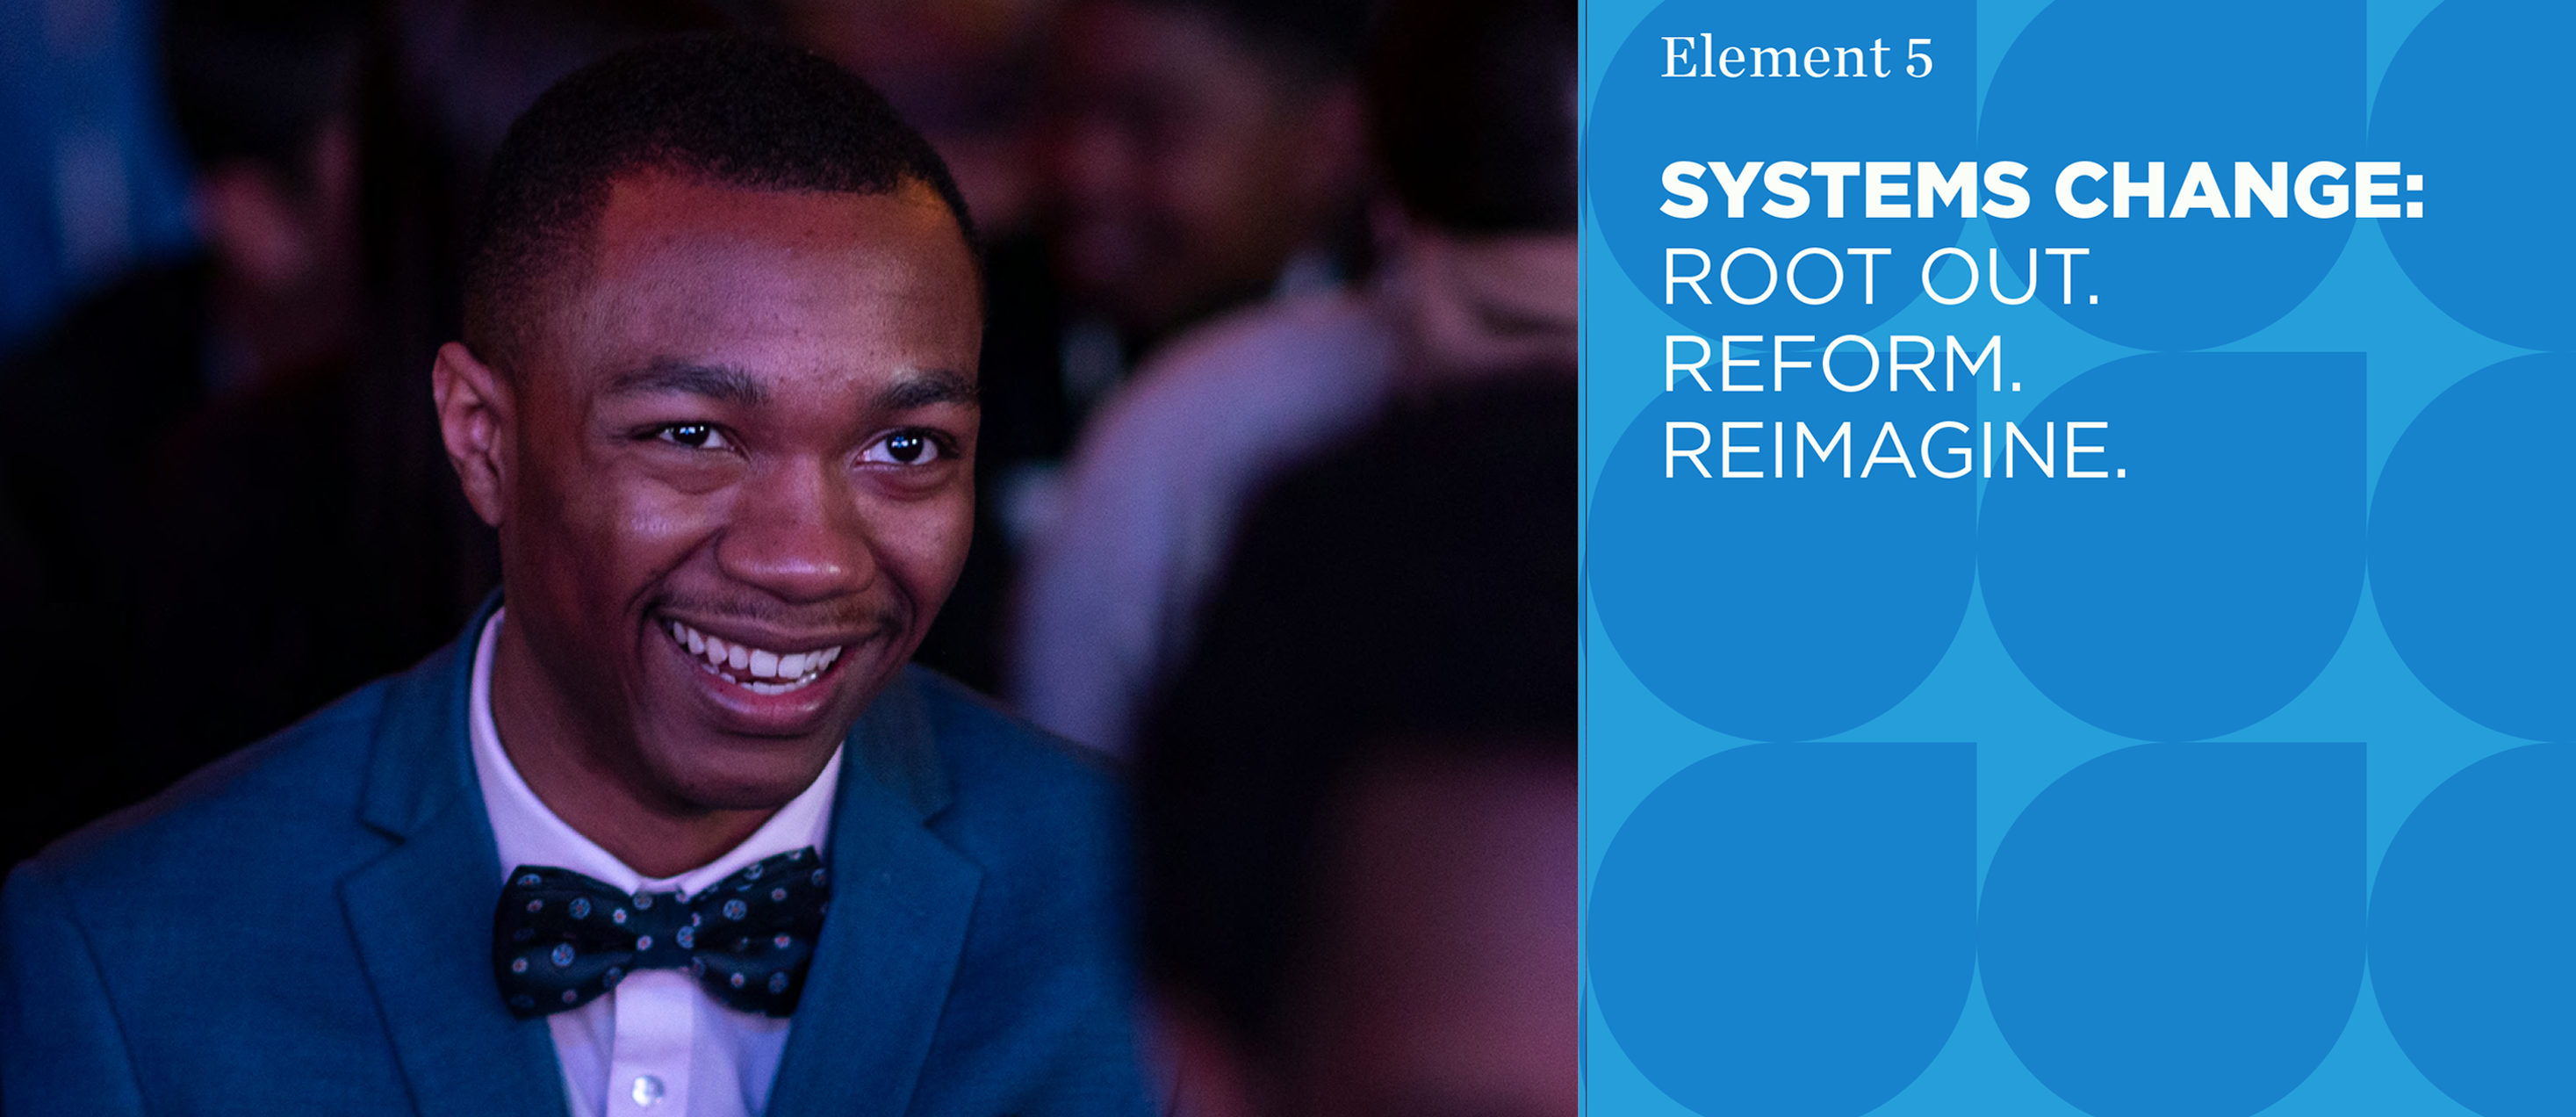 Systems Change: Root out. Reform. Reimagine